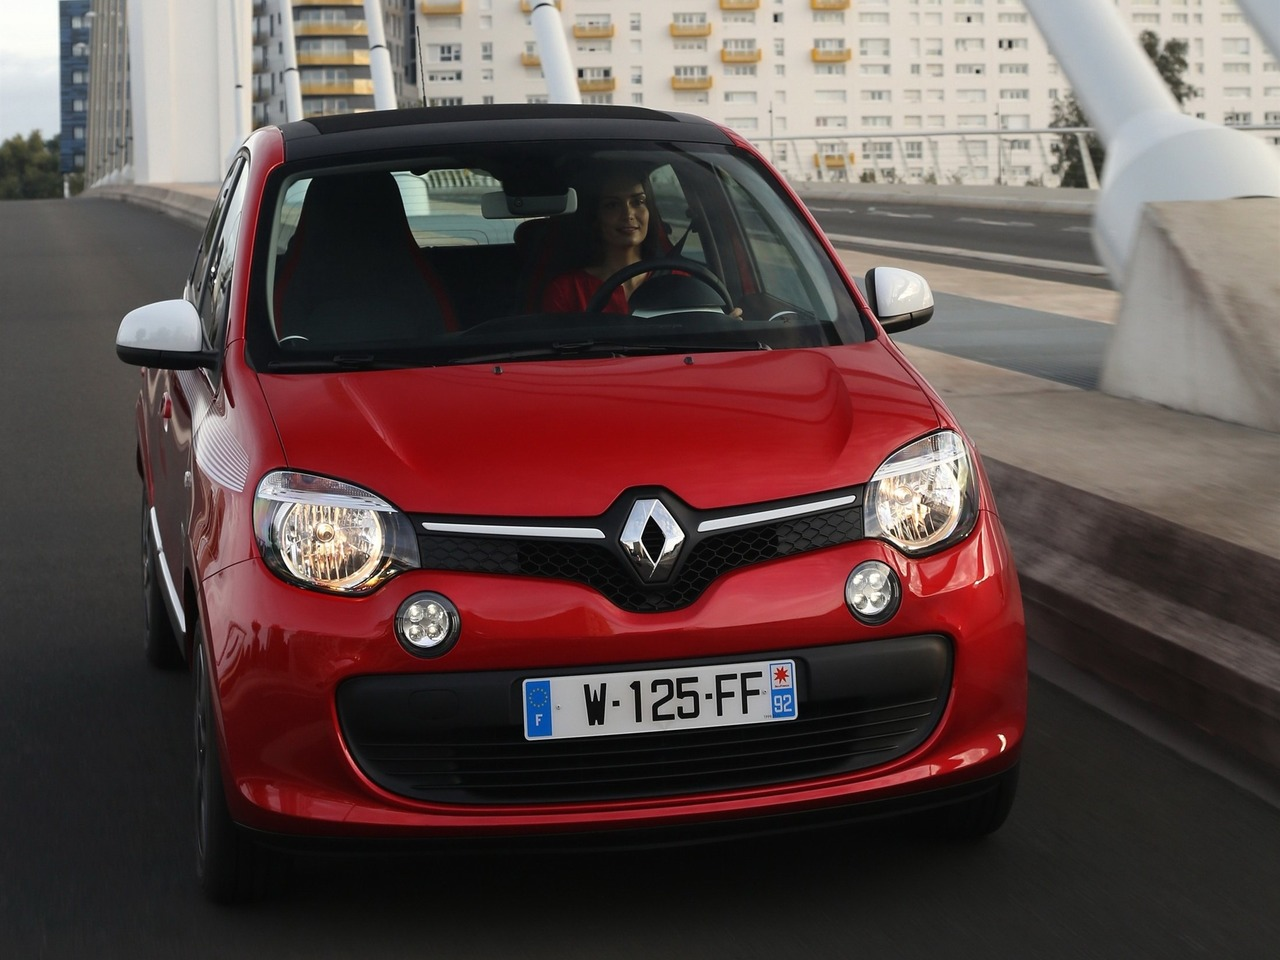 renault twingo iii 0 9 tce 90 hp. Black Bedroom Furniture Sets. Home Design Ideas